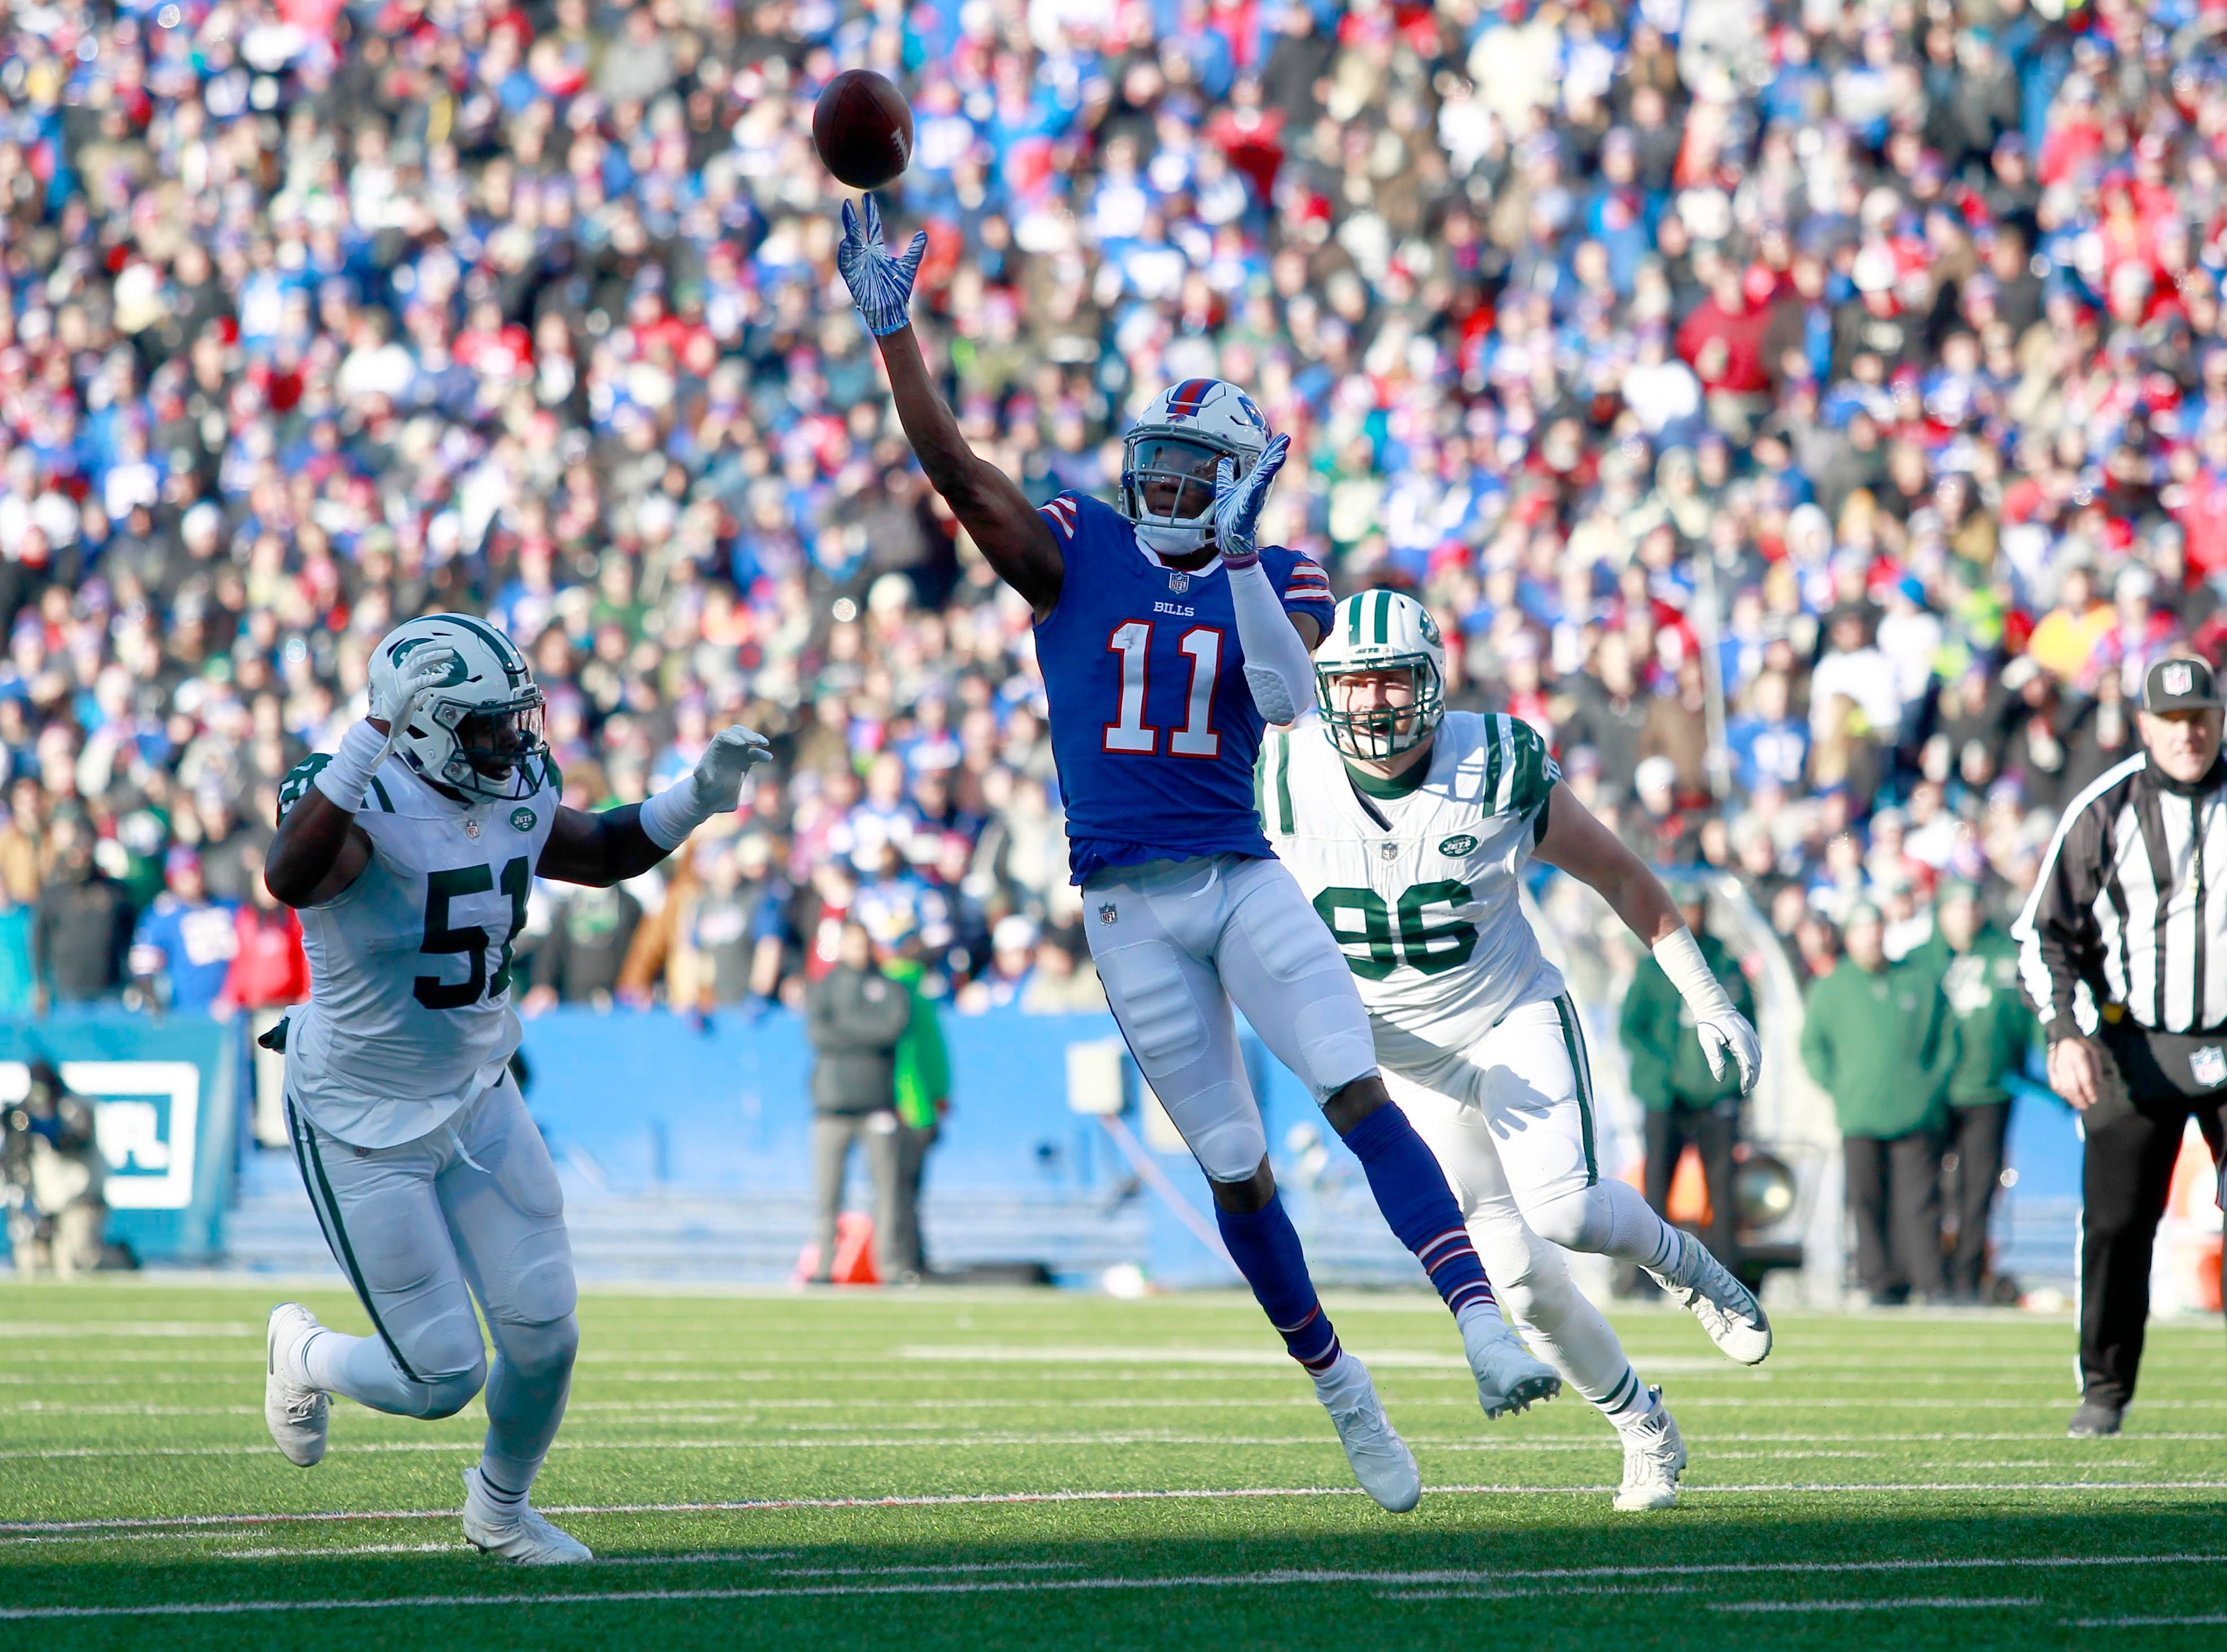 Dec 9, 2018; Orchard Park, NY, USA; Buffalo Bills wide receiver Zay Jones (11) throws a pass during the first half against the New York Jets at New Era Field. Mandatory Credit: Timothy T. Ludwig-USA TODAY Sports